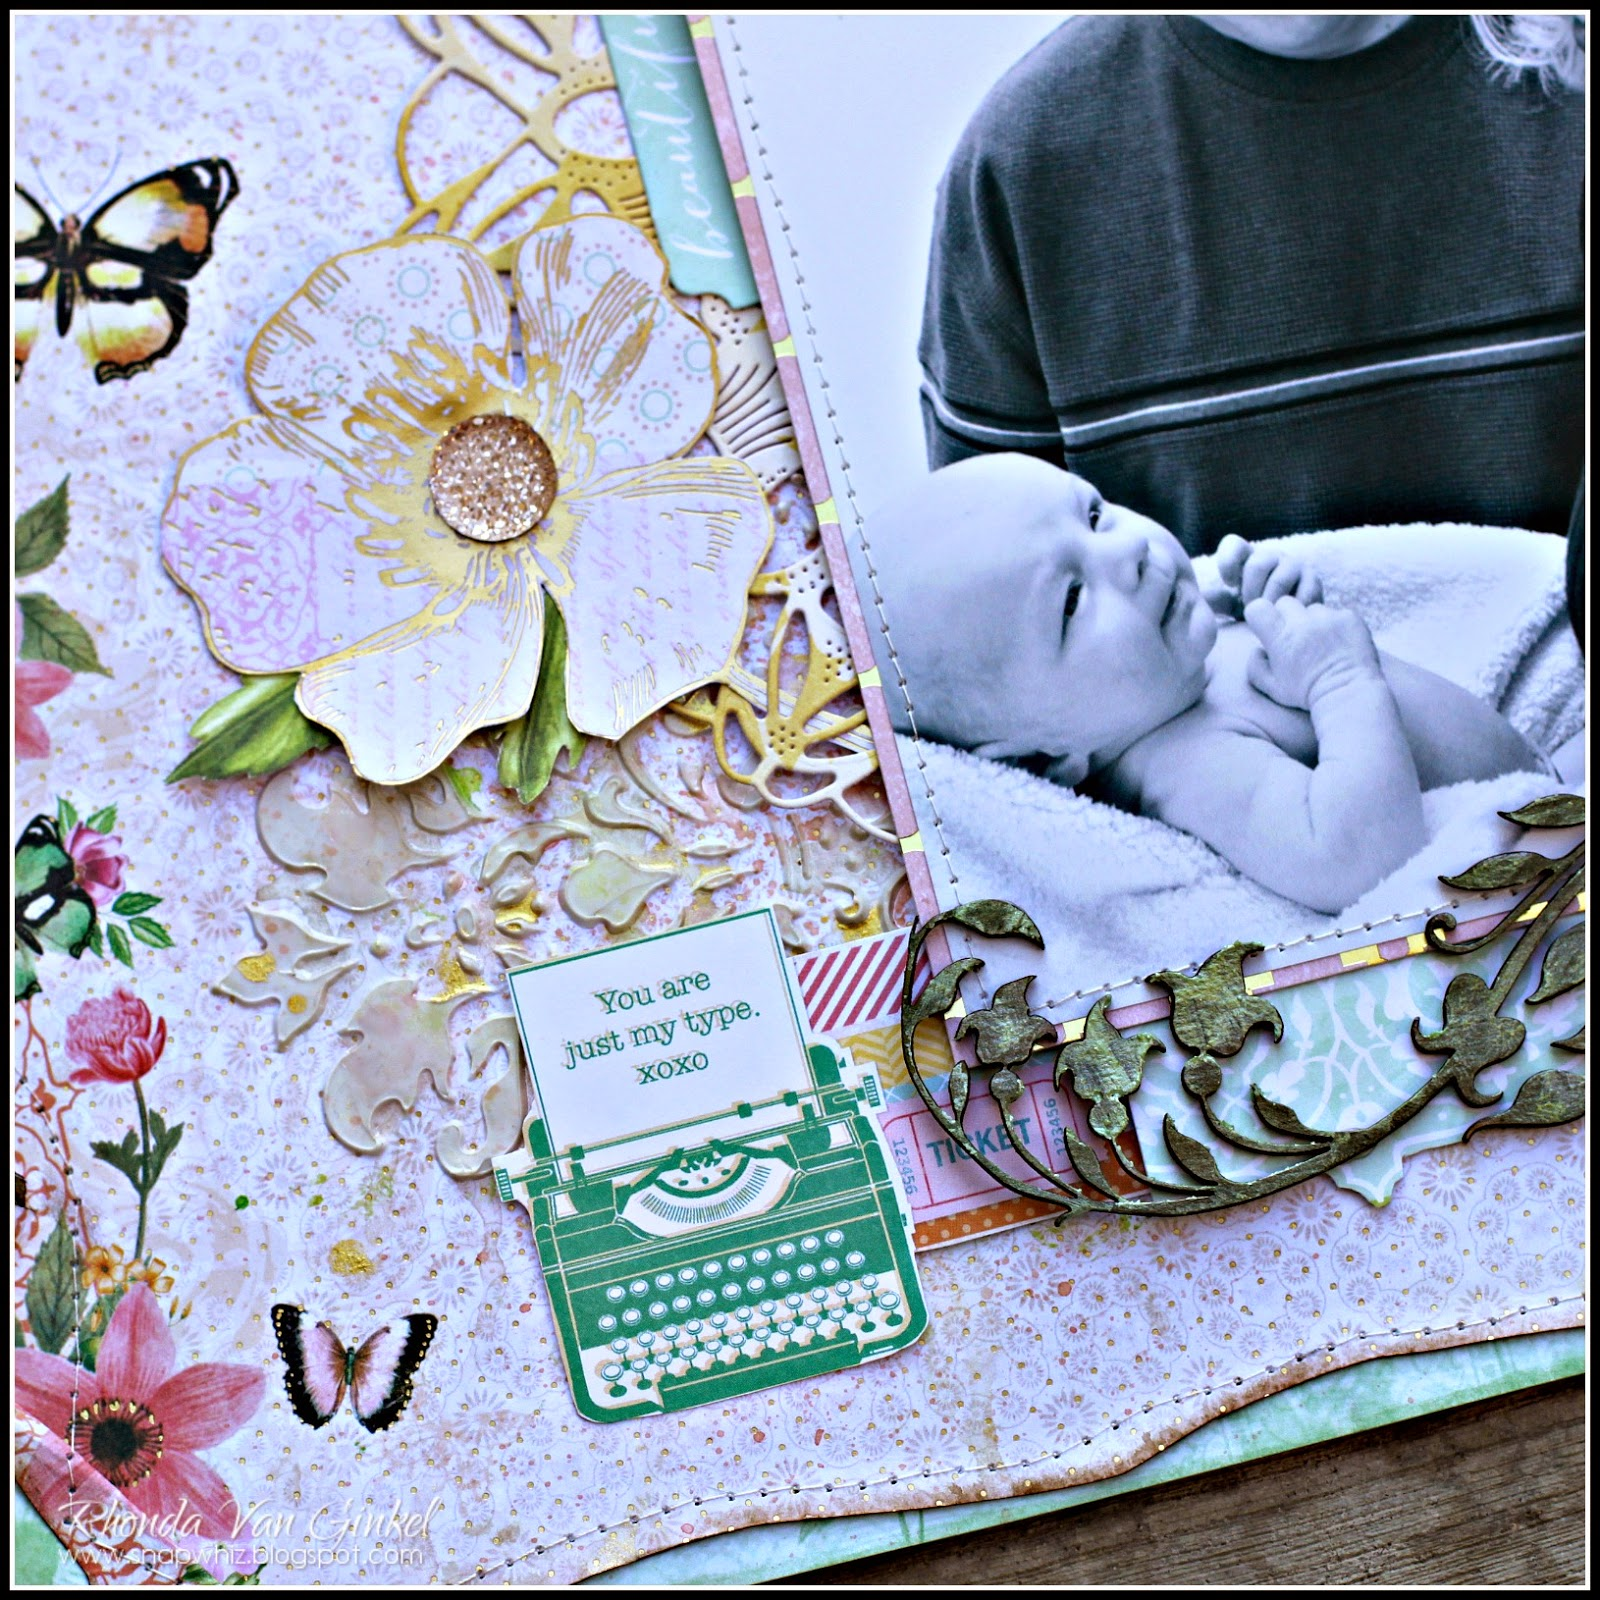 Butterfly Kisses Scrapbook Page by Rhonda Van Ginkel for UmWowStudio featuring Damask Mask, Butterfly Kisses Flair